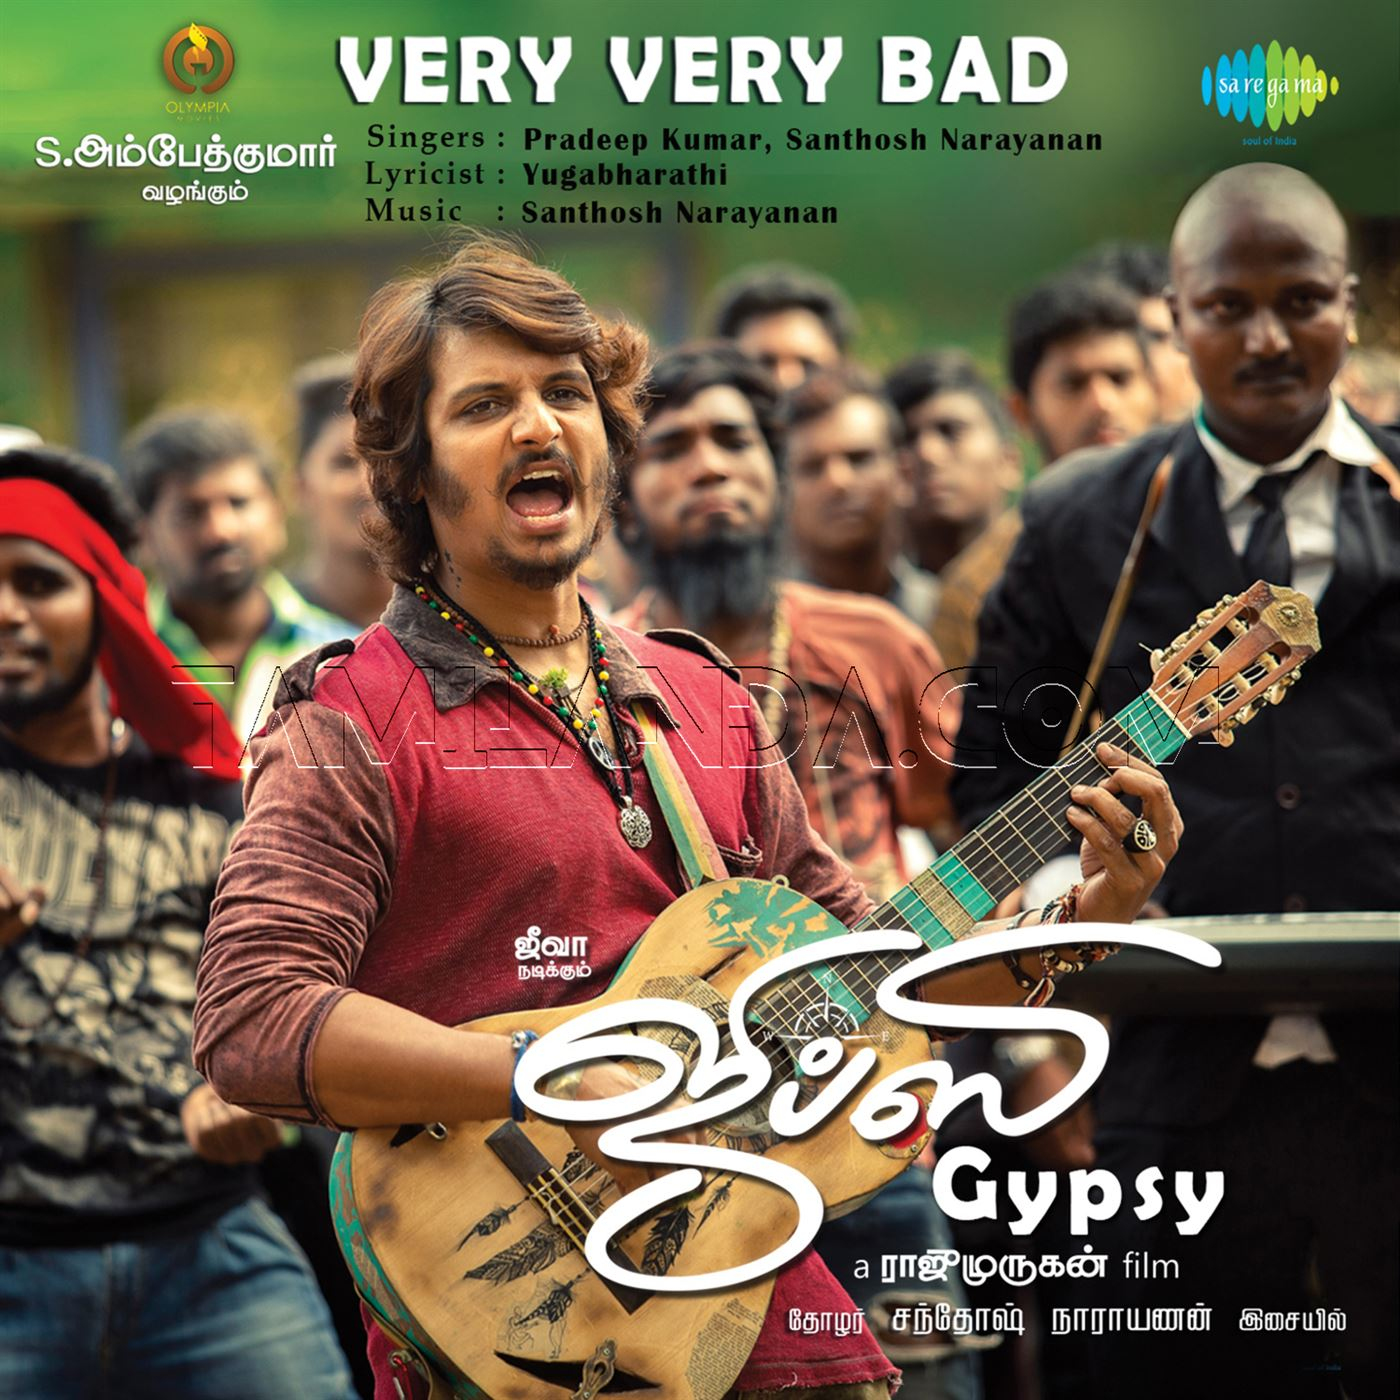 Very Very Bad (From Gypsy) – Single WAV Song (2019)